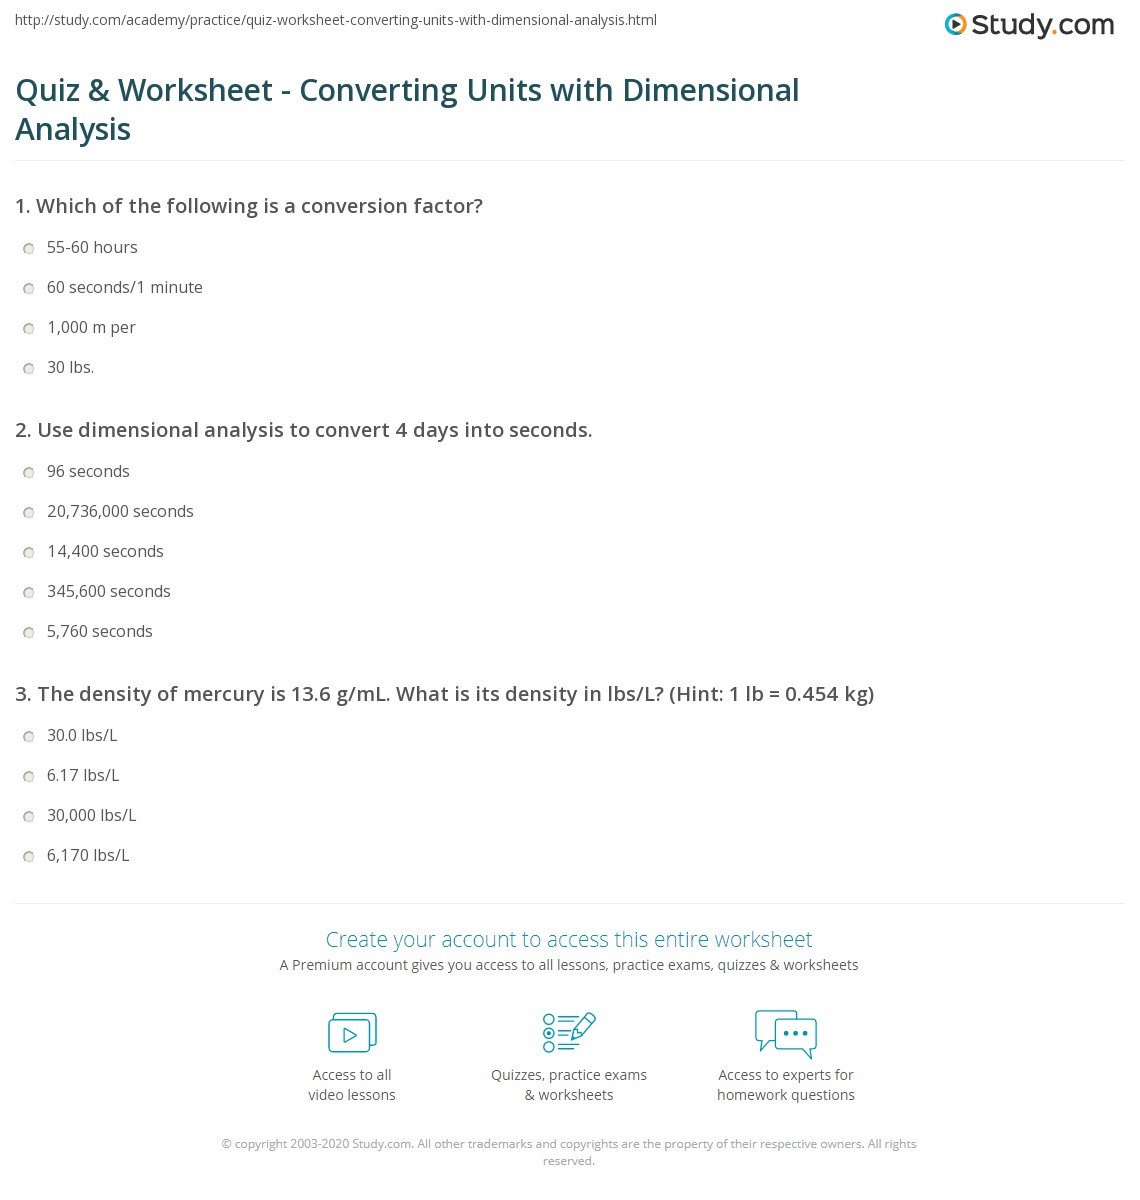 Conversion Factor Worksheet With Answers - Worksheets